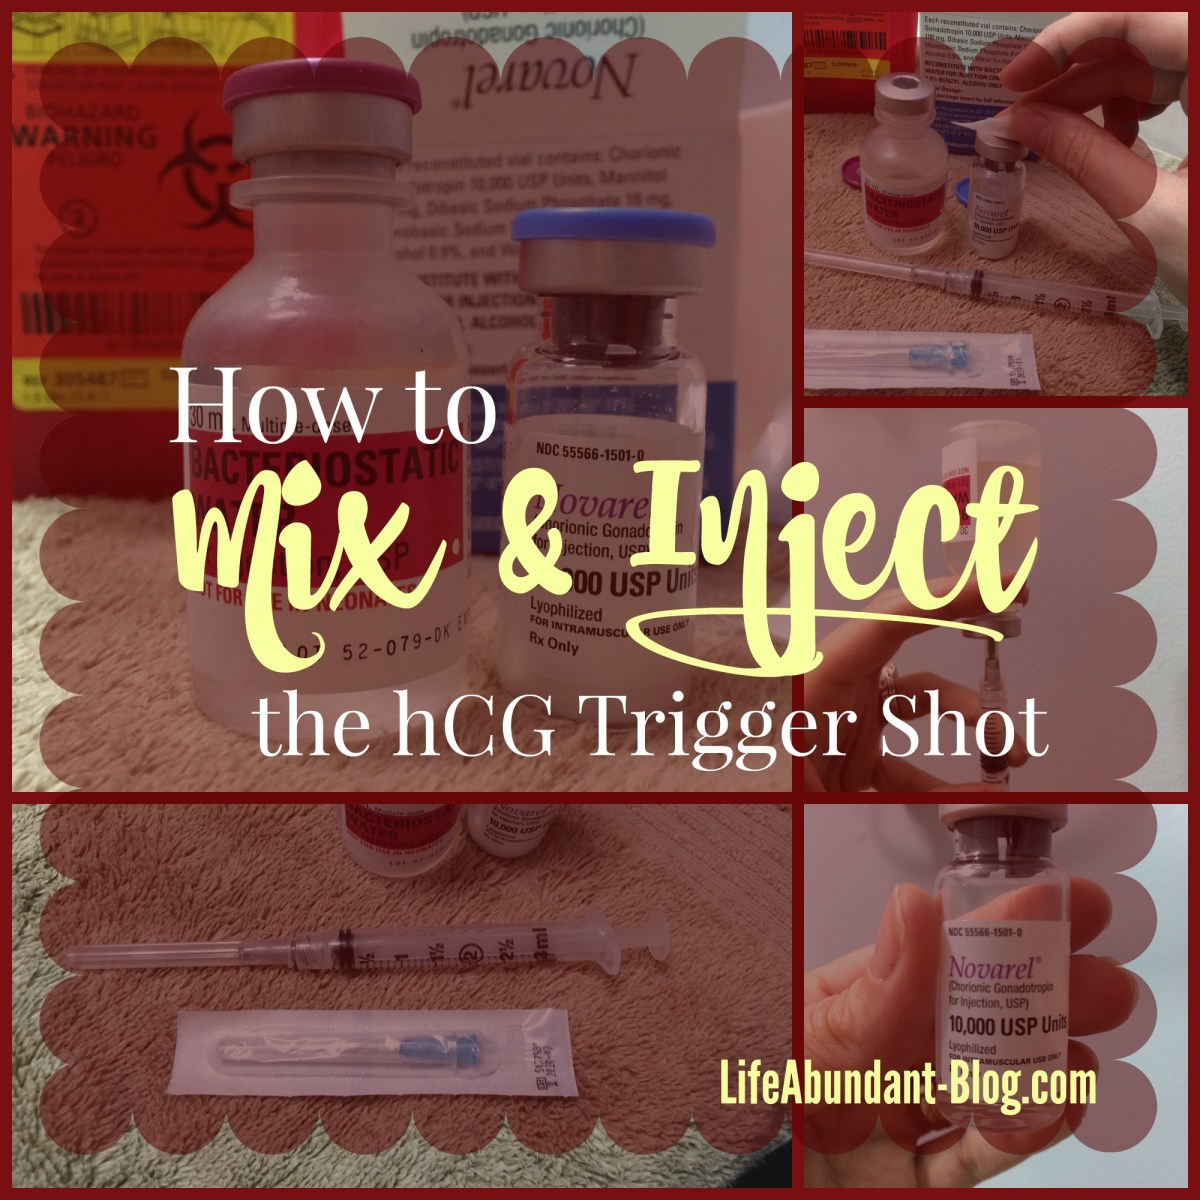 How to Mix and Inject the hCG Trigger Shot